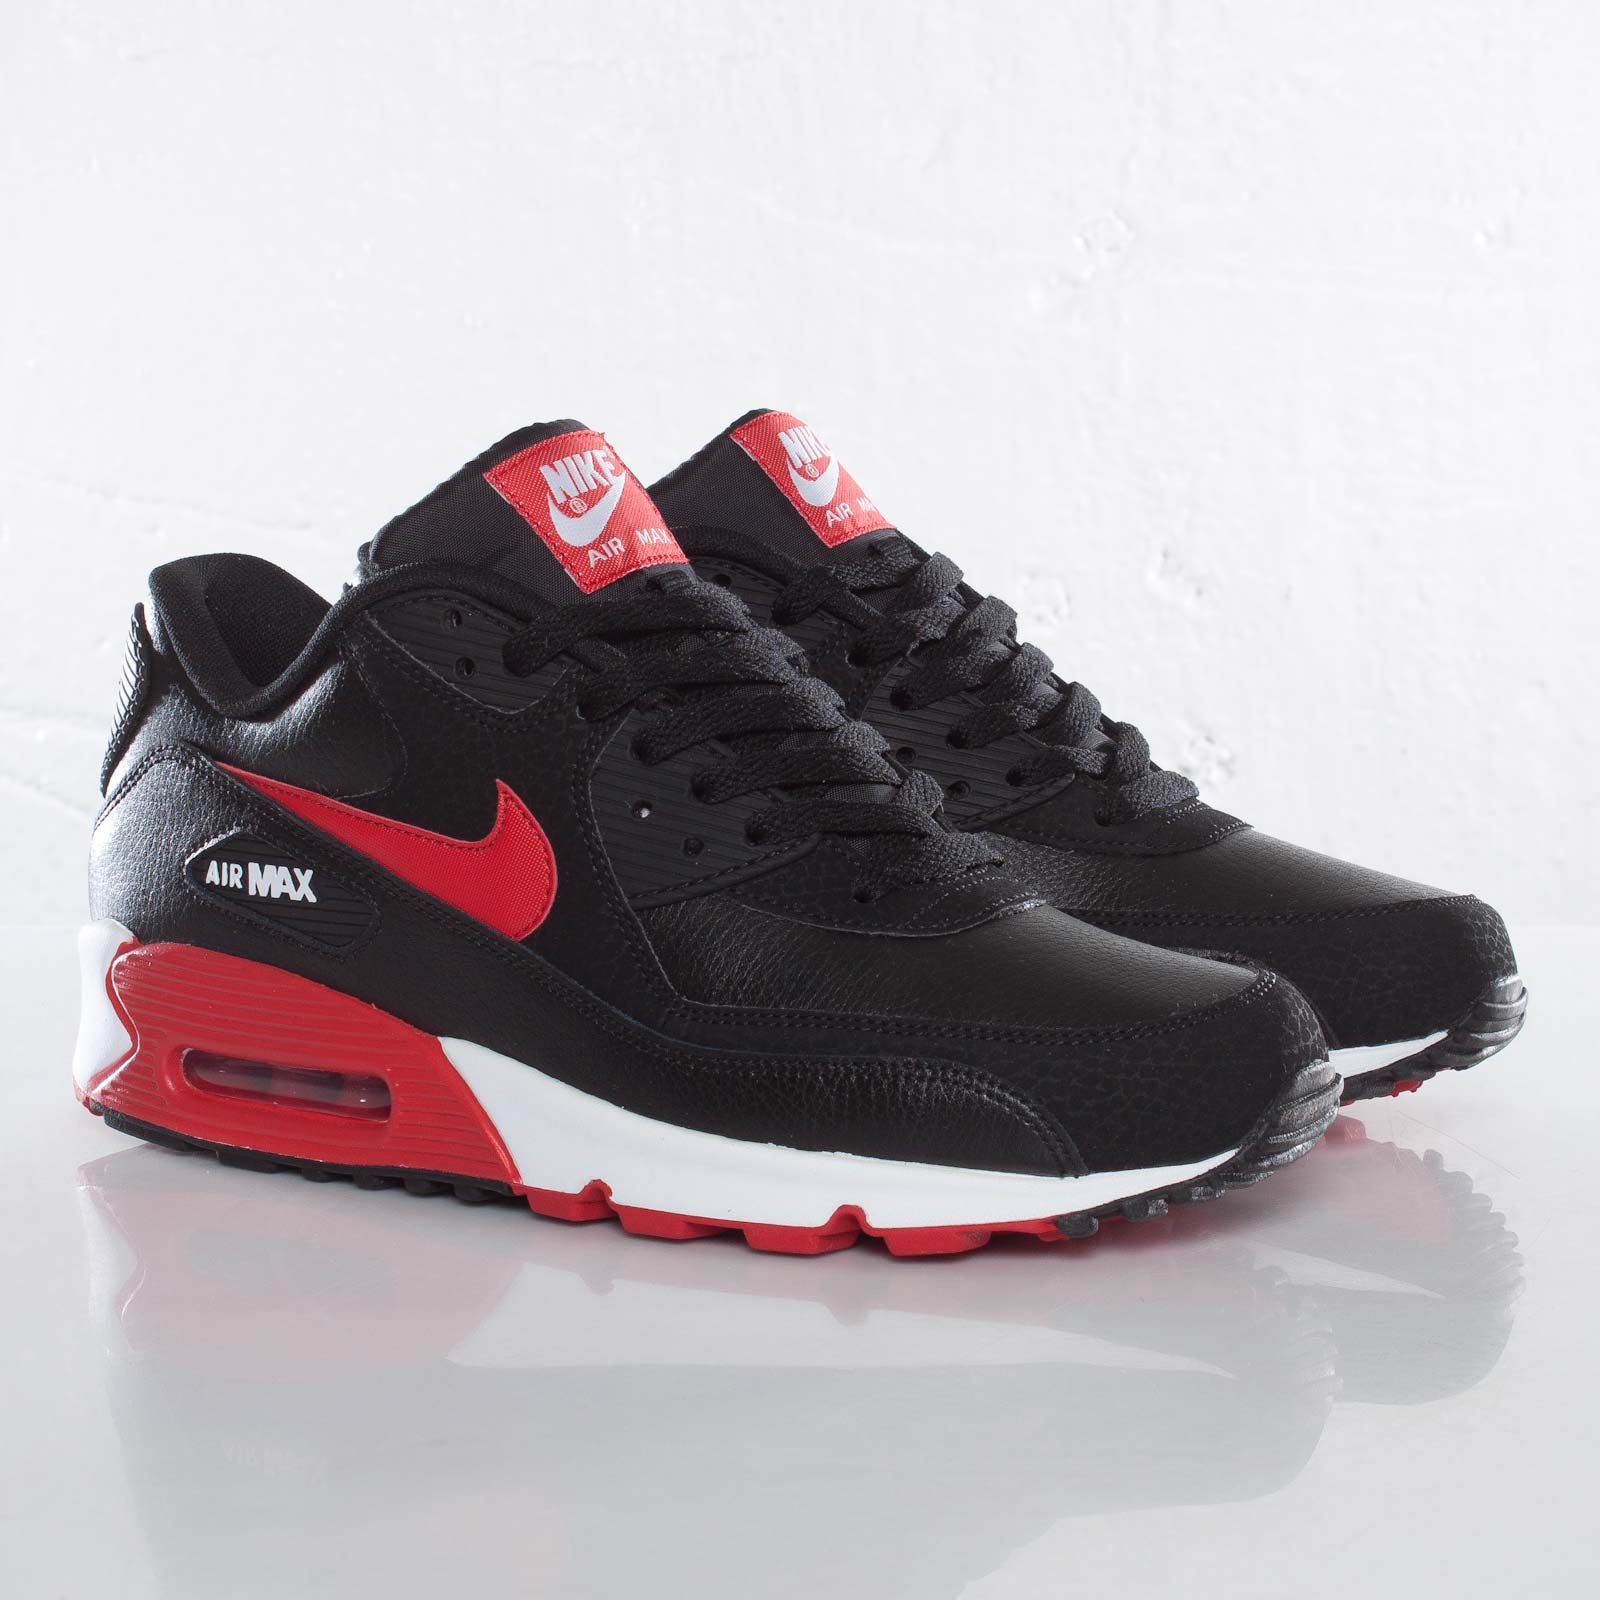 hot sale online 6a17f 61c0b Nike Air Max 90 Essential - 537384-069 - Sneakersnstuff ...